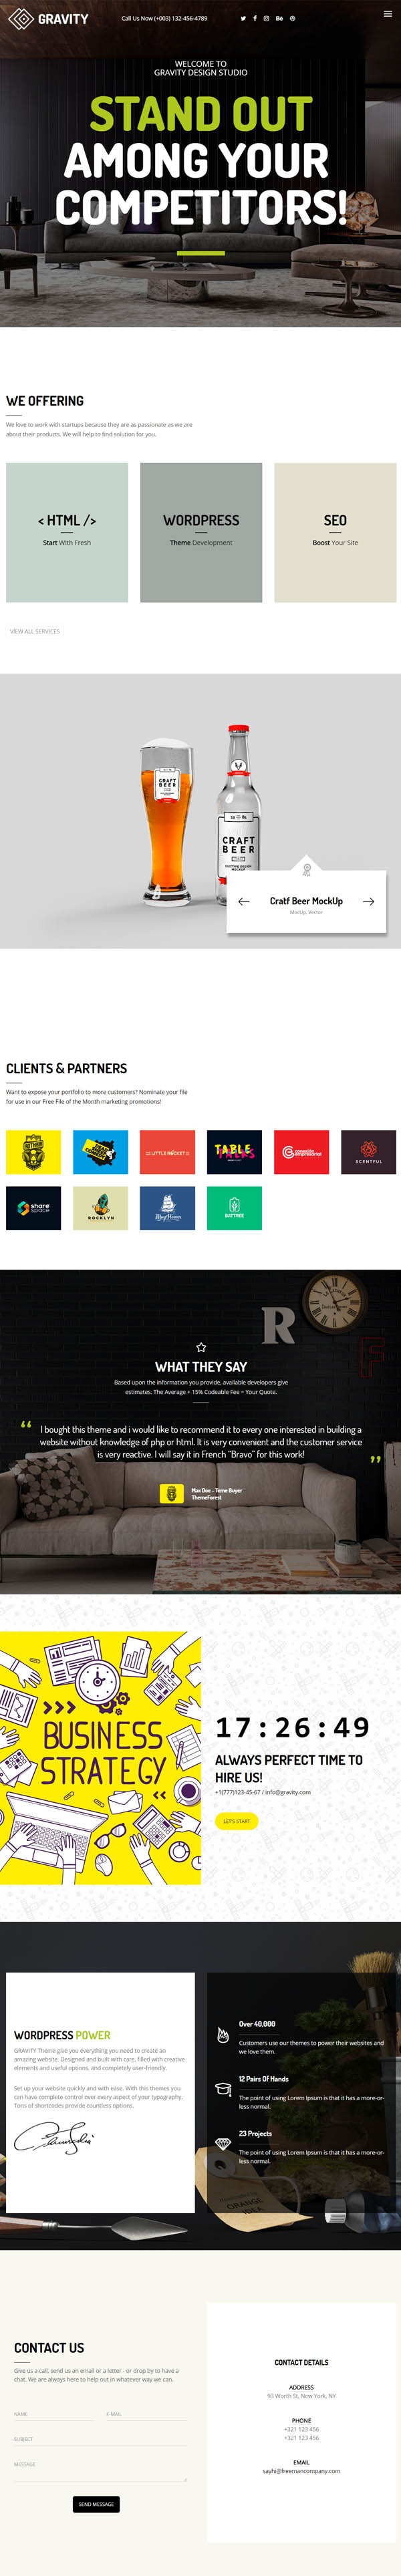 Gravity – Creative Agency & Presentation Theme